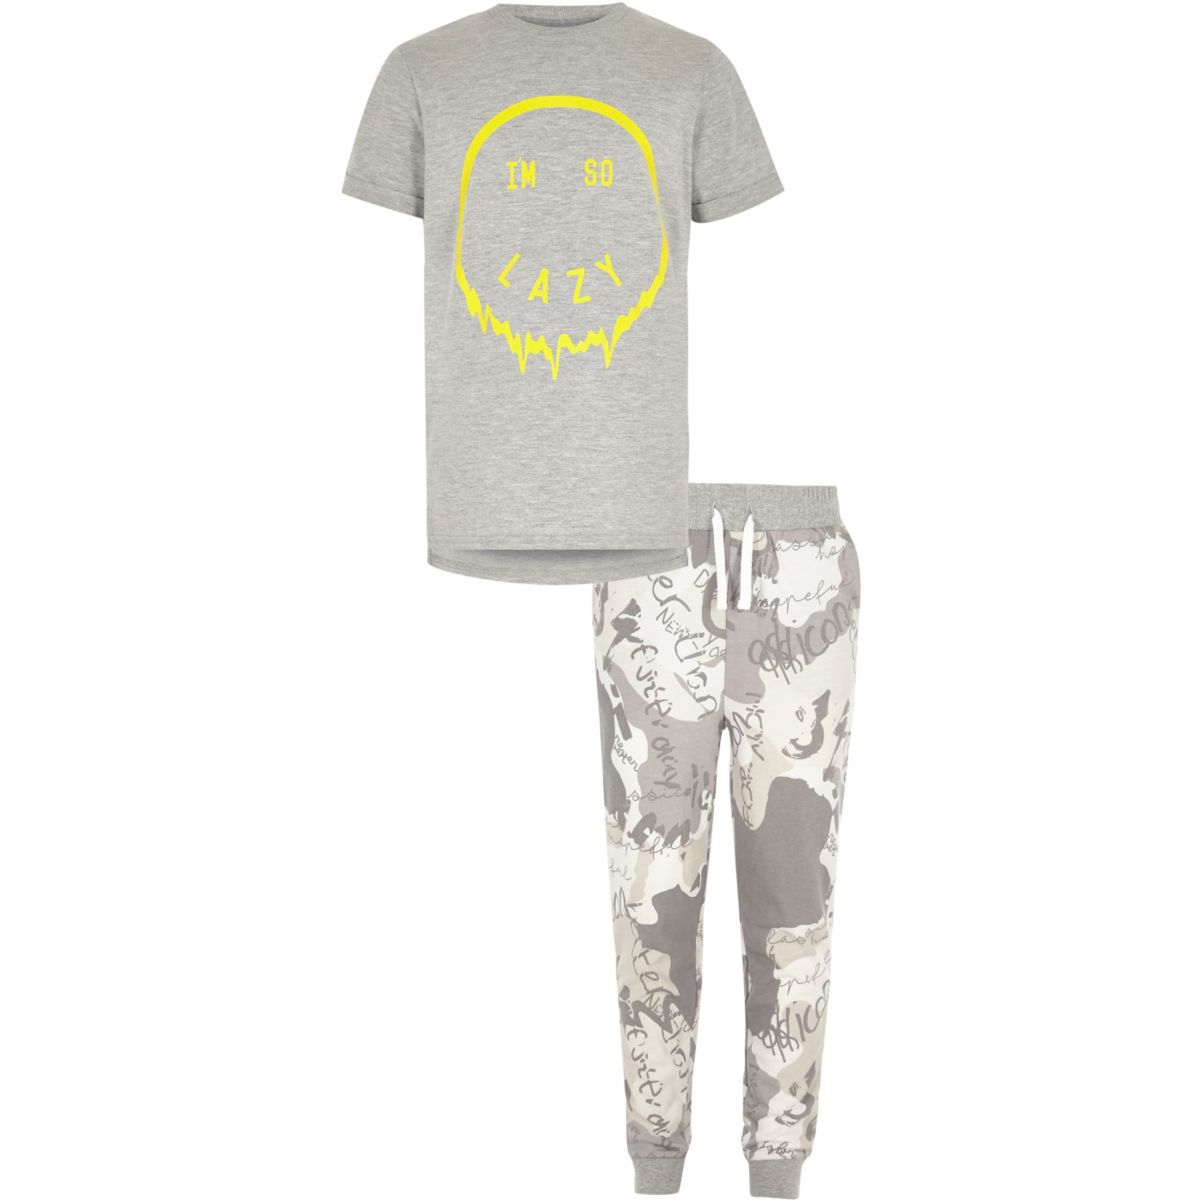 Boys grey 'I'm so lazy' pyjama set